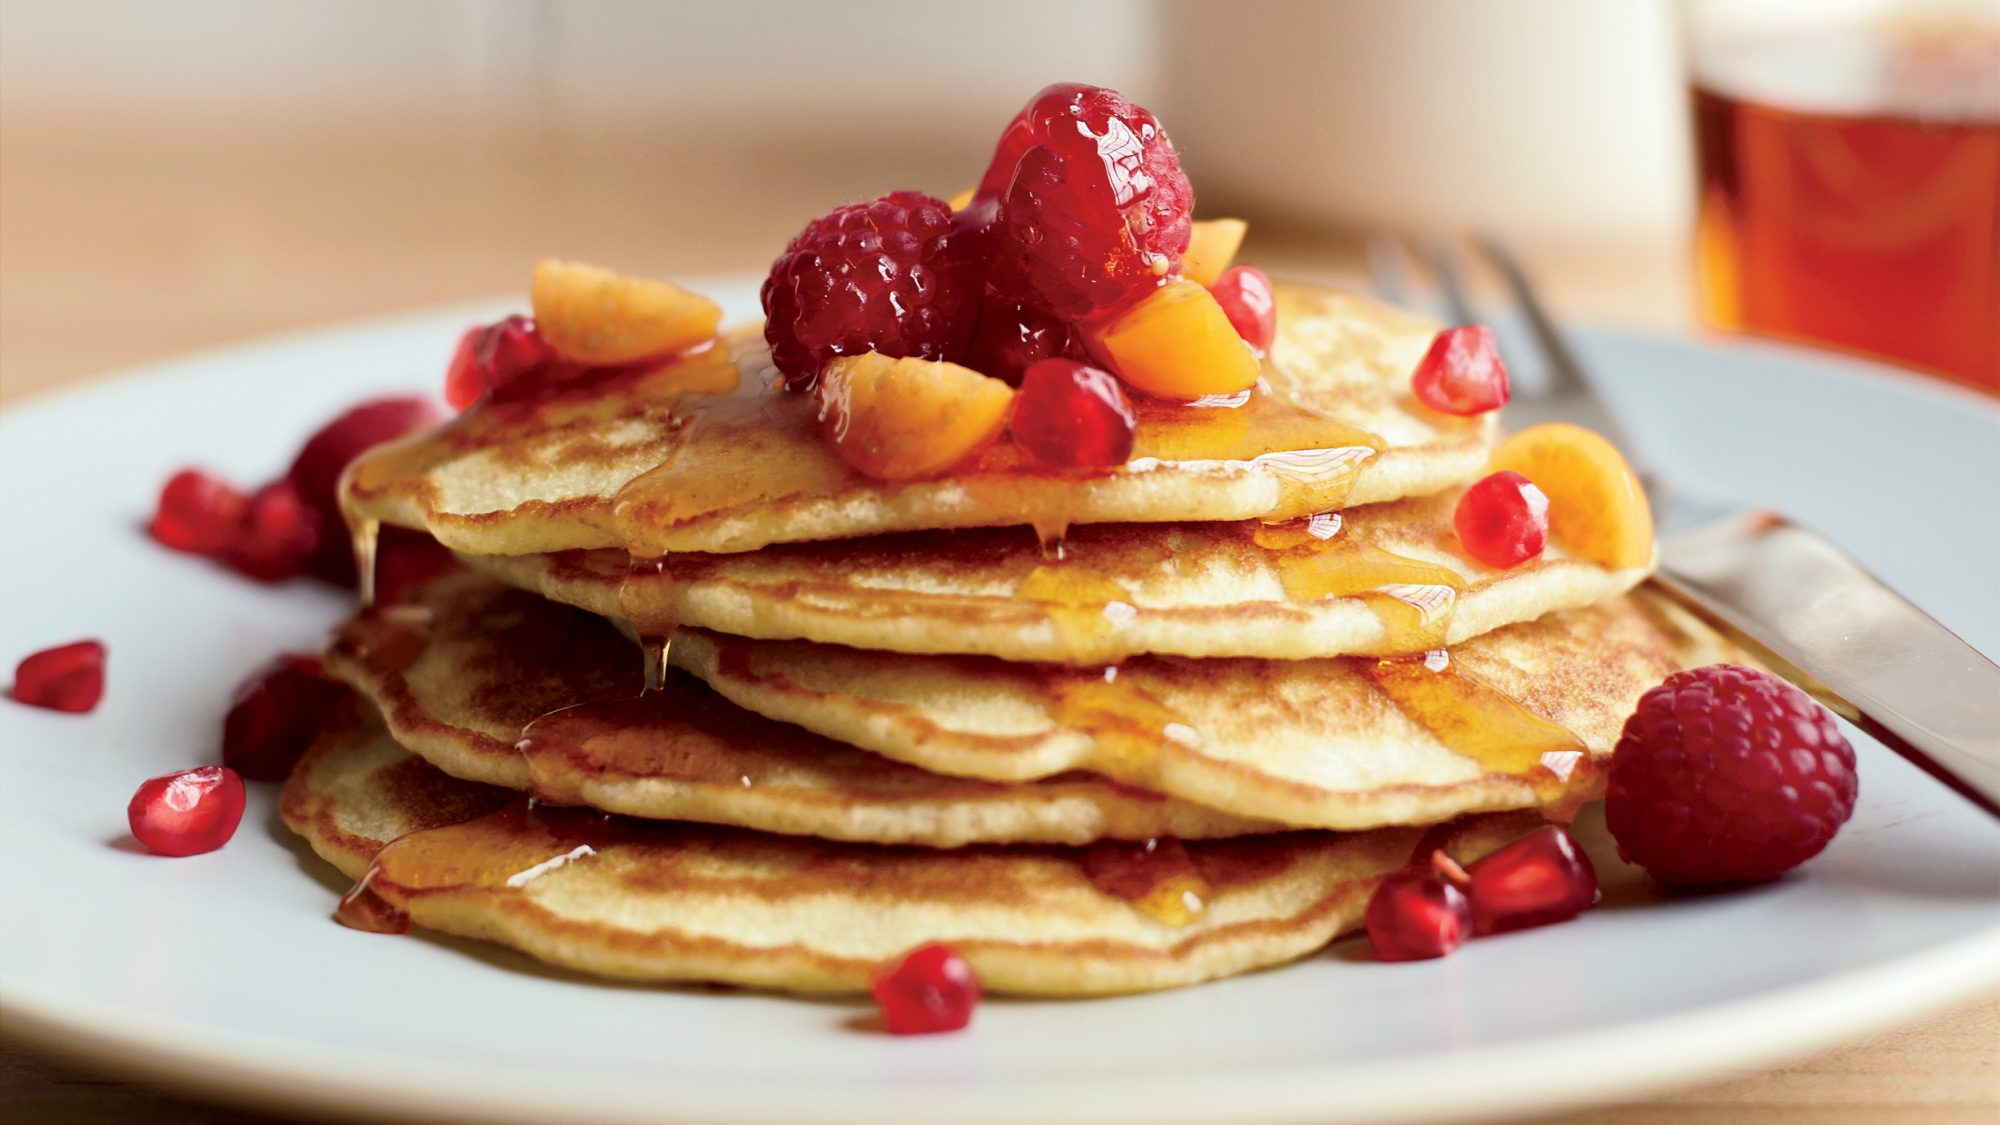 Scientists Search for Glaucoma Cure, Discover Perfect Pancakes Instead